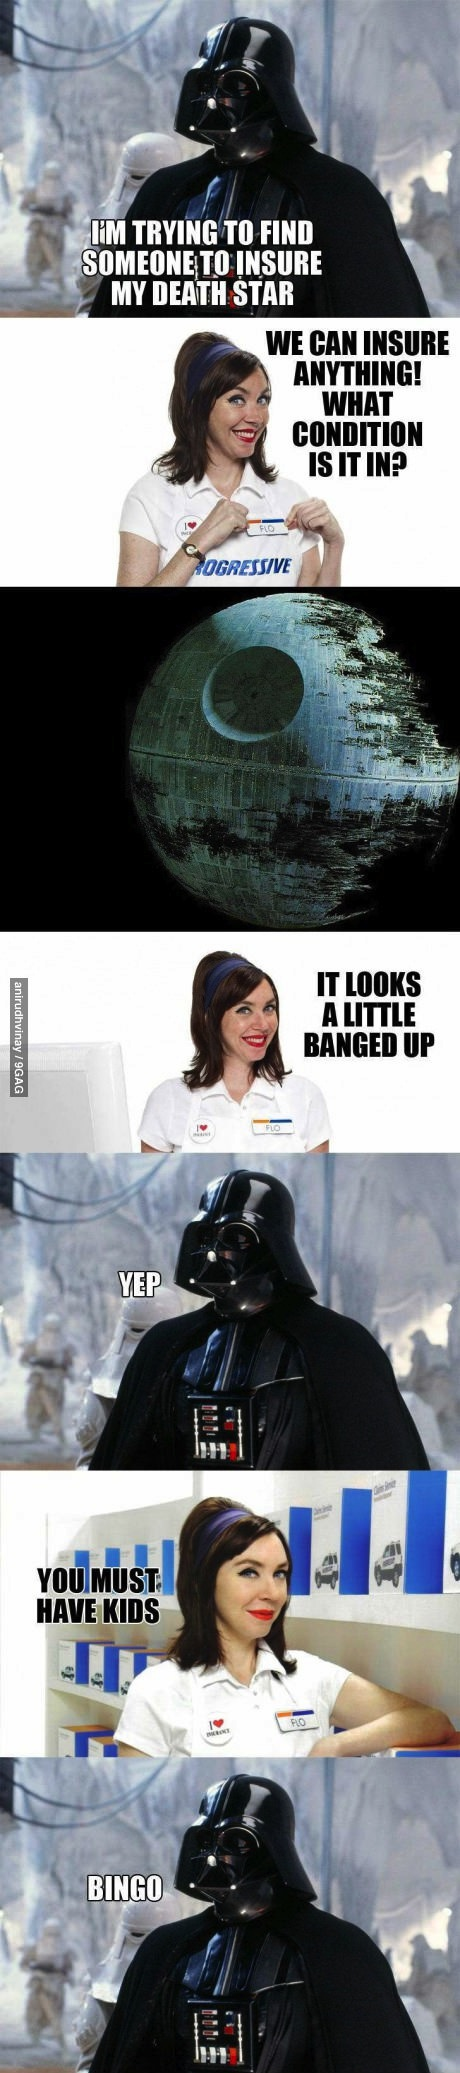 darth vader, star wars, insurance